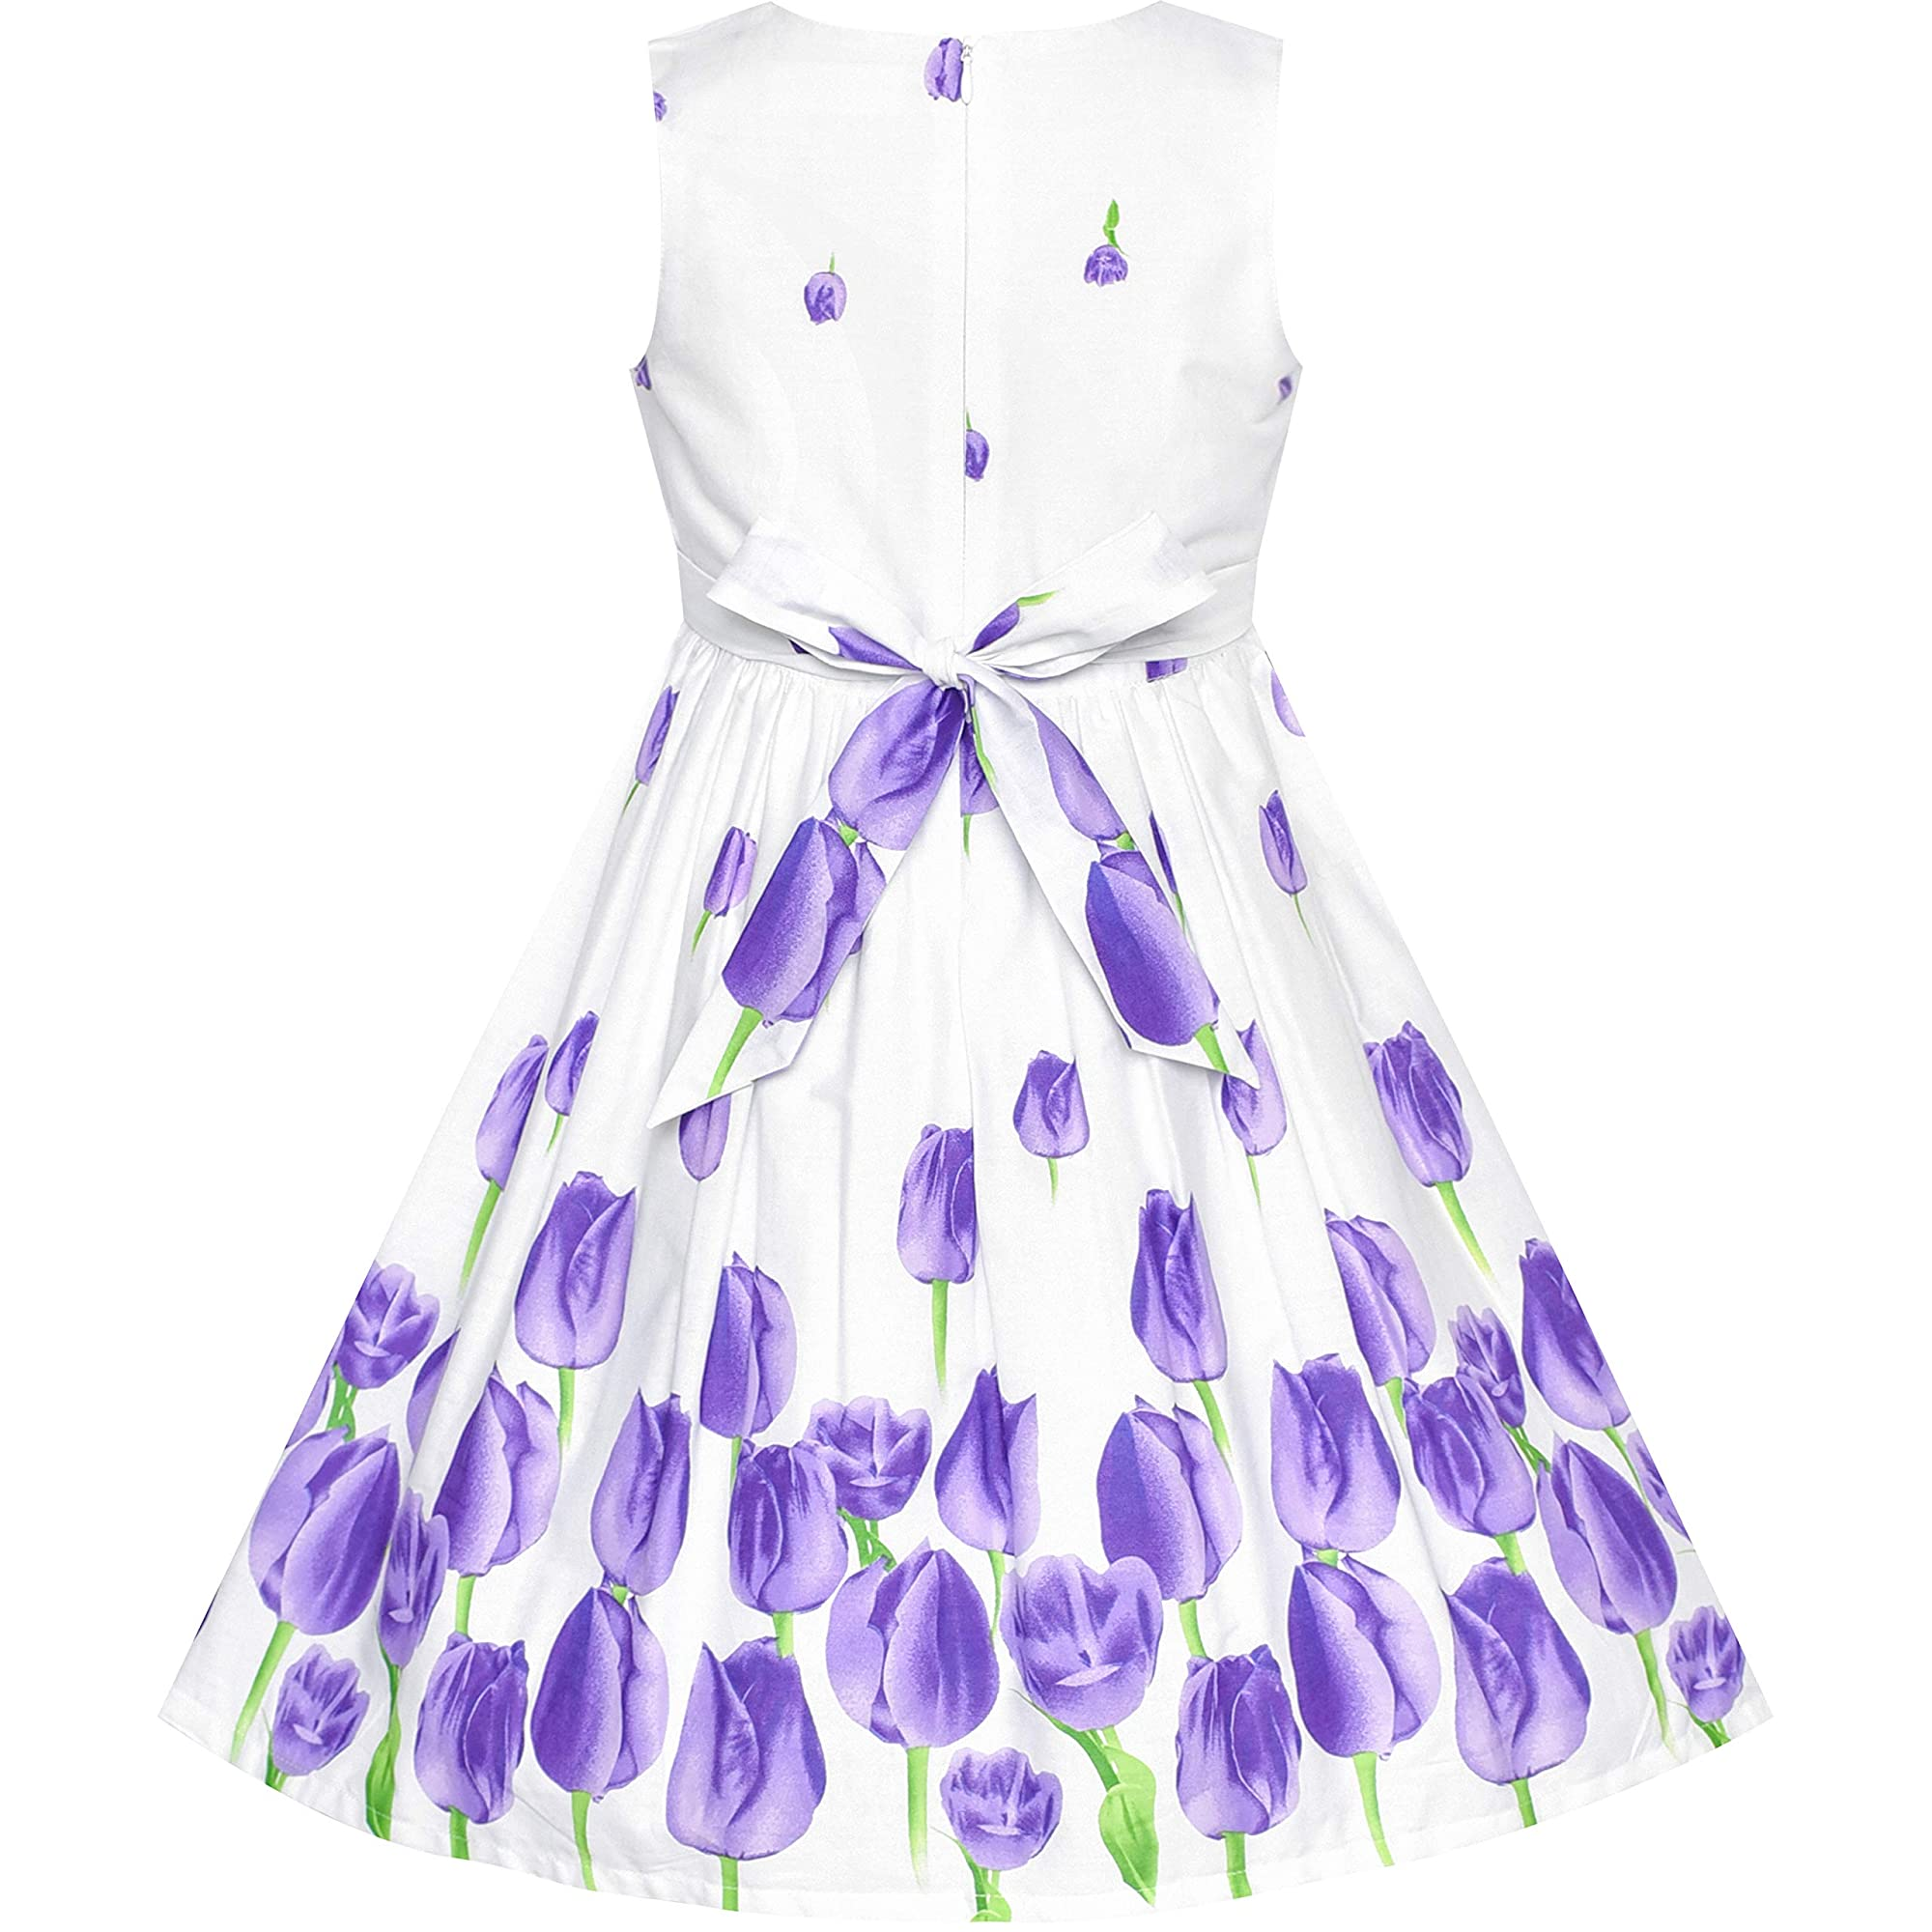 Fashion Bow Tie Printed Party Dress